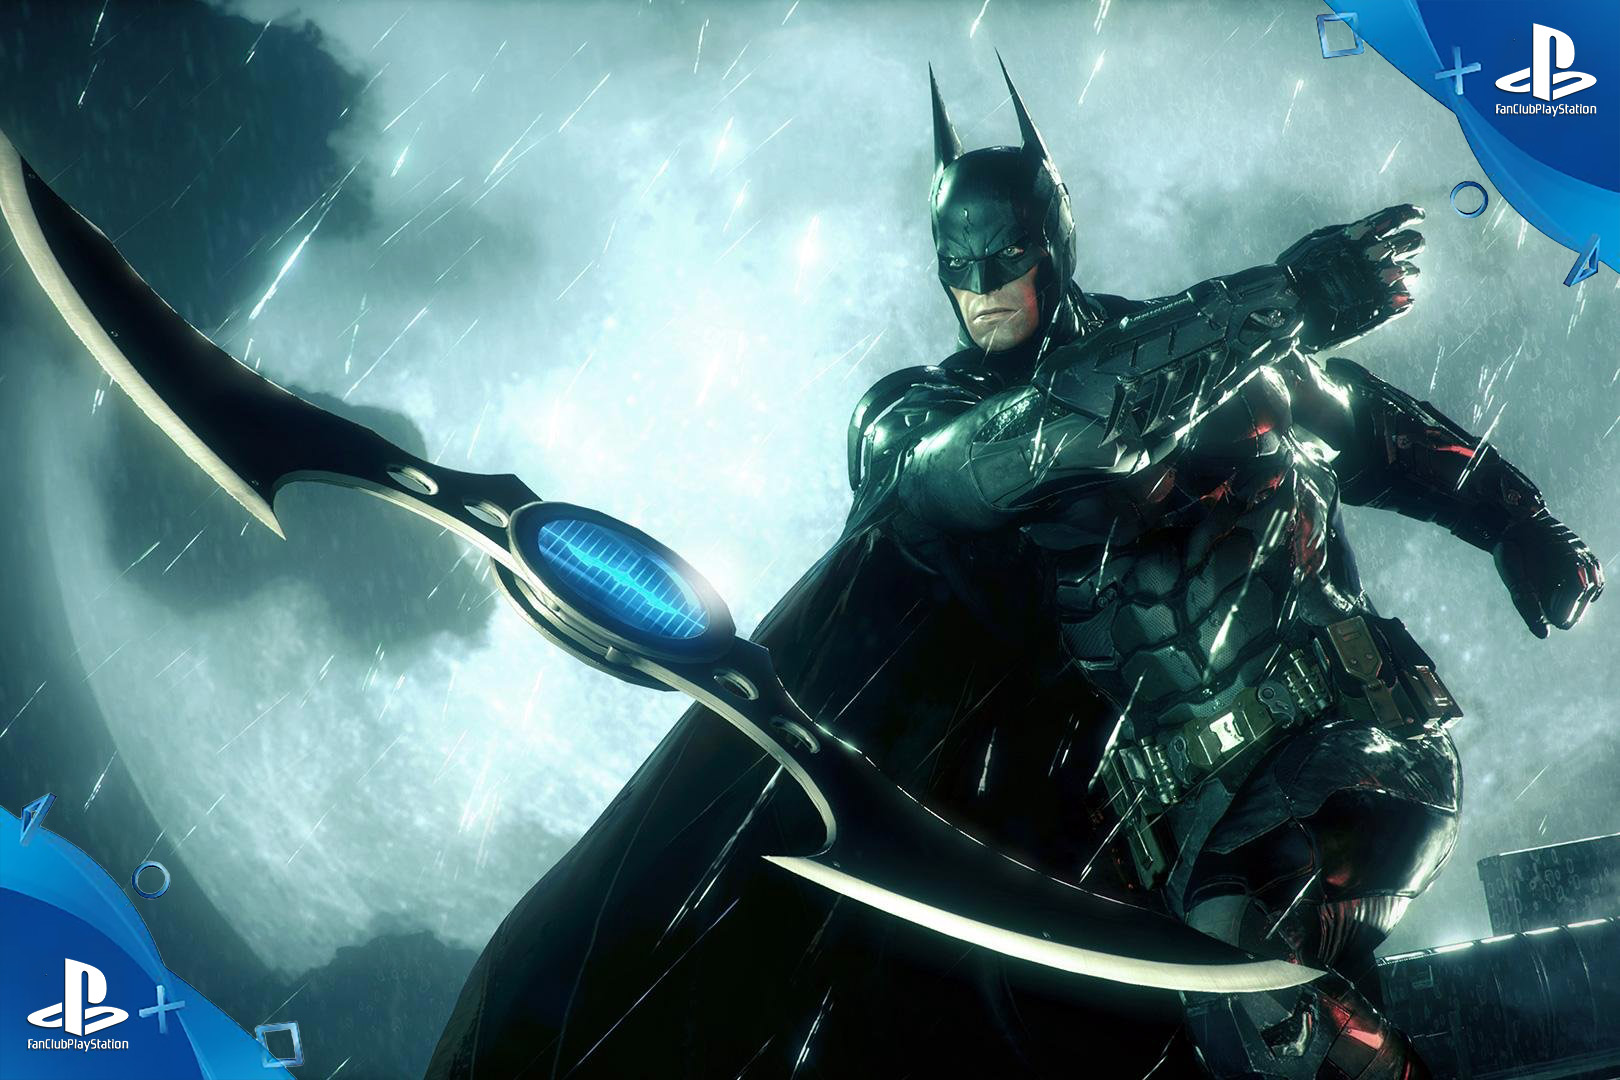 batman-arkham-knight-jeu-video-images copy